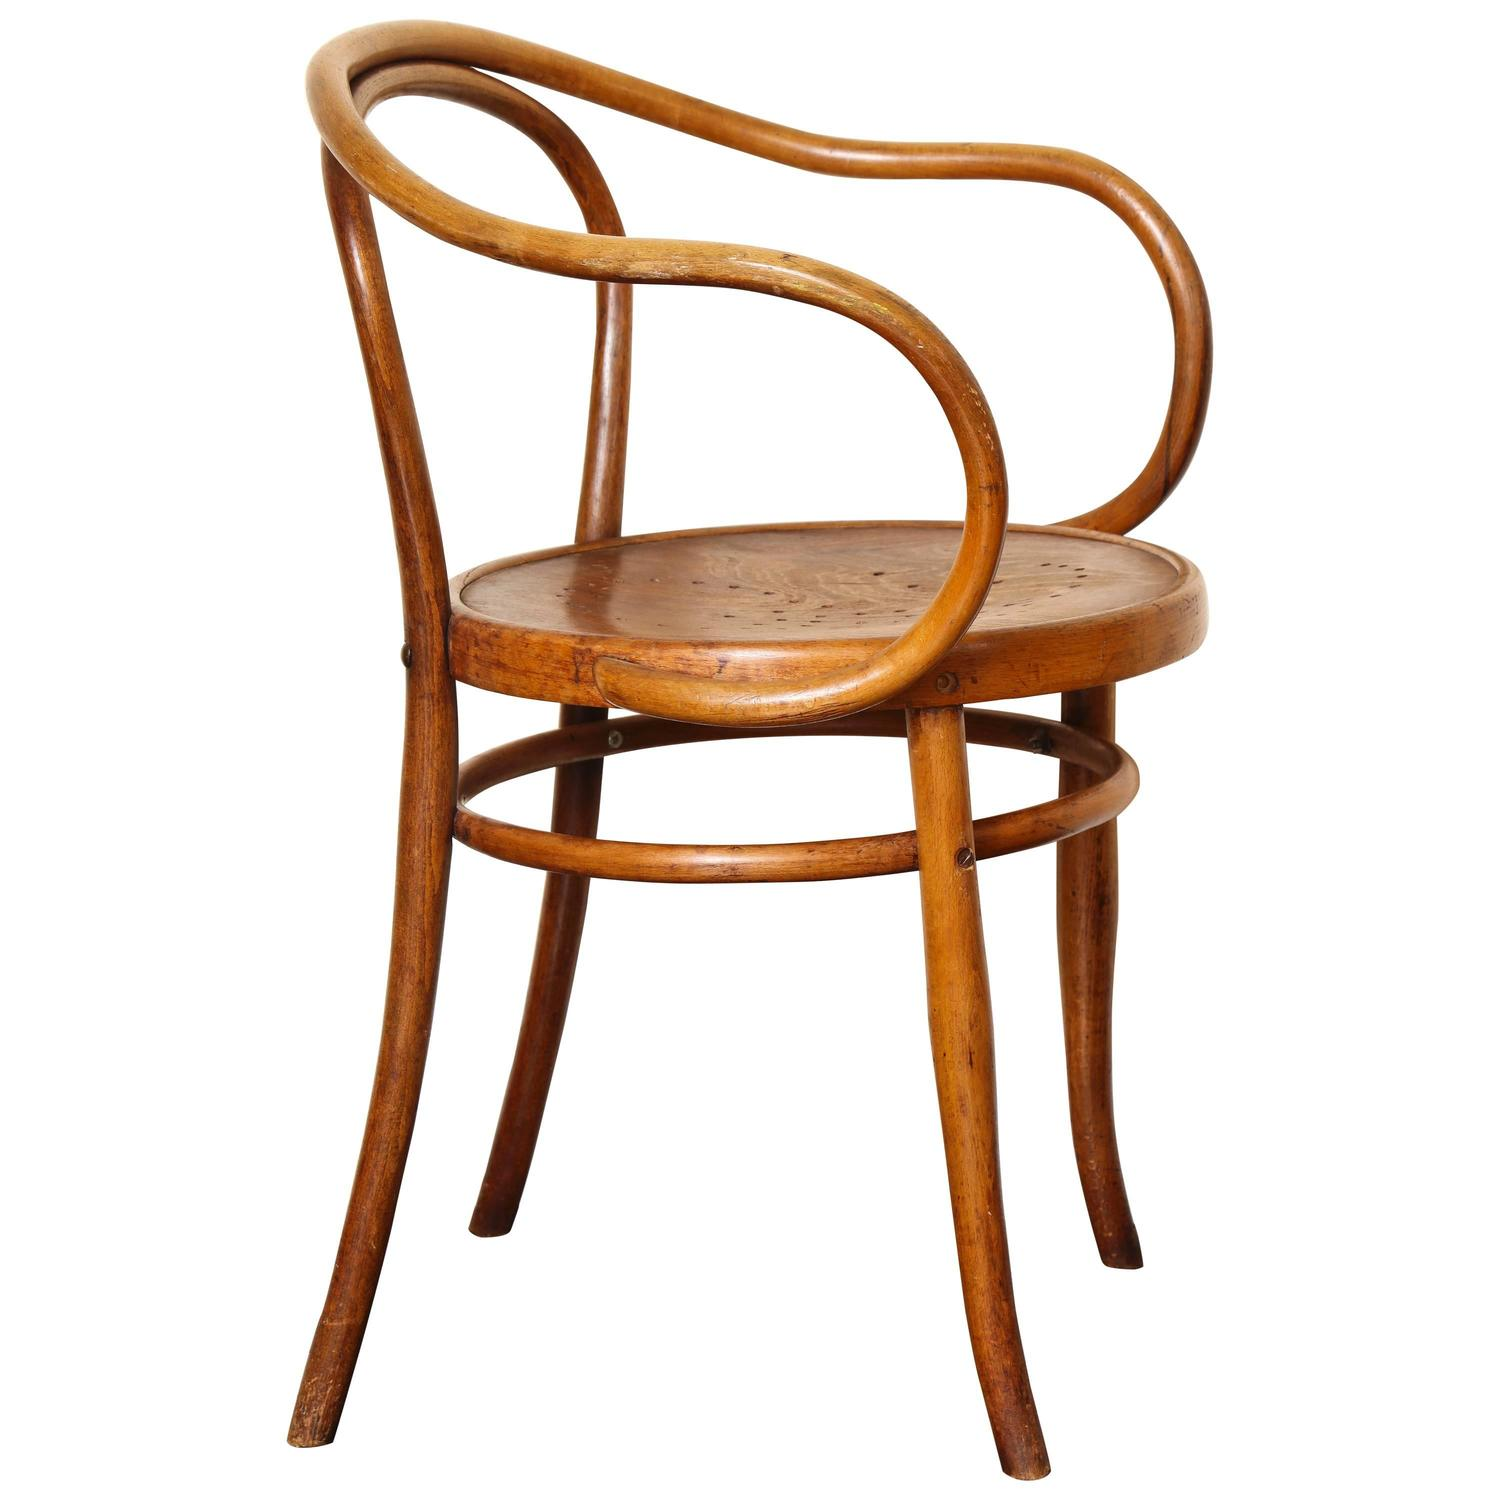 Attirant Bentwood B 9 Chair By Michael Thonet, Manufactured By Jacob And Josef Kohn  For Sale At 1stdibs